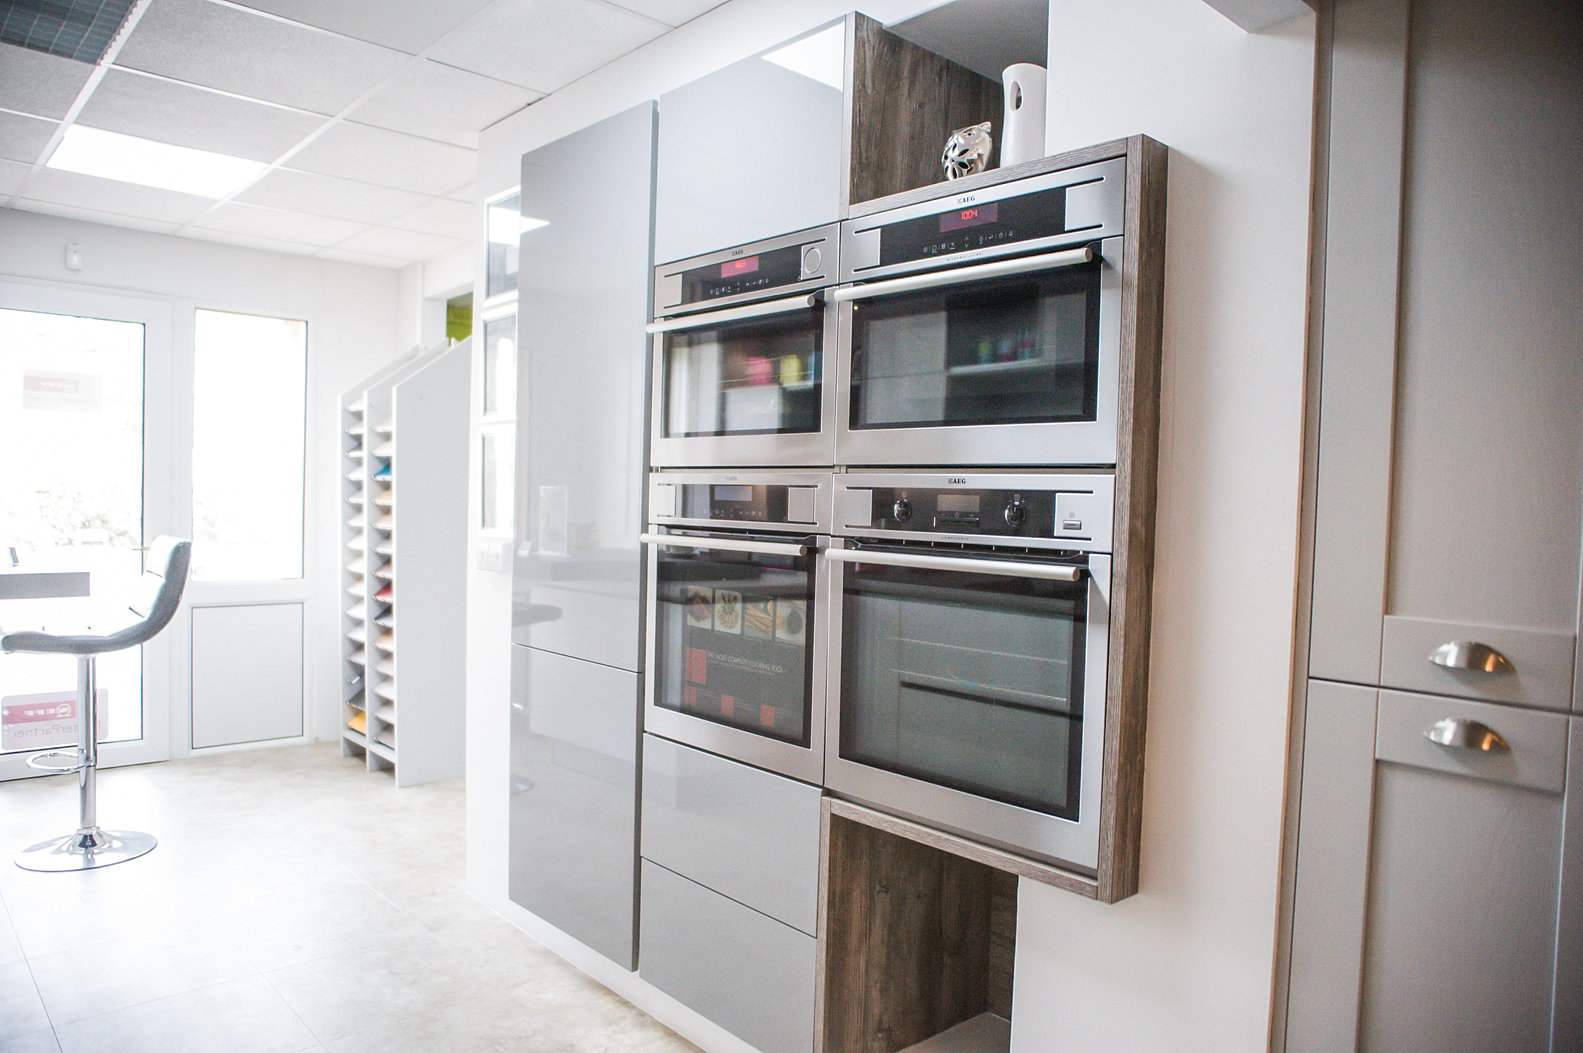 Russell jones kitchens bedrooms fitted kitchens - Fiu interior design prerequisites ...